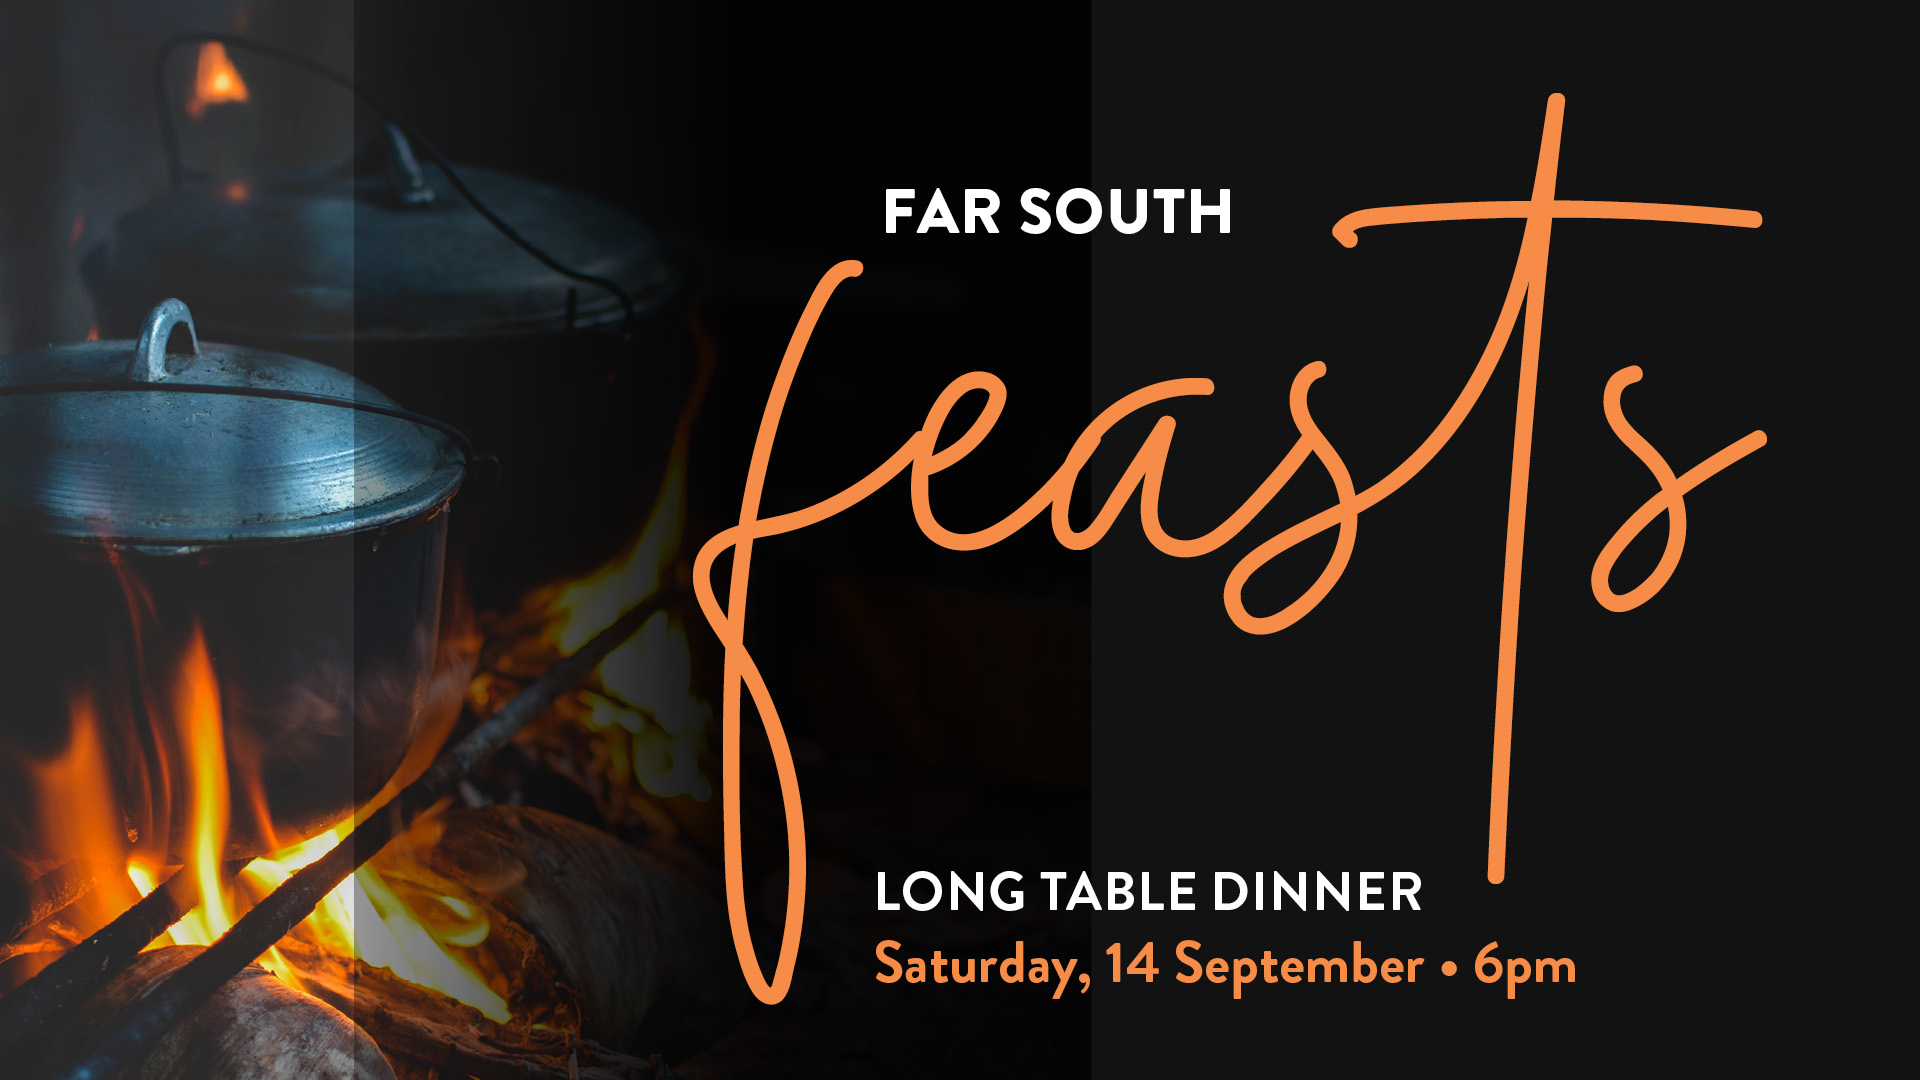 Far South Feasts